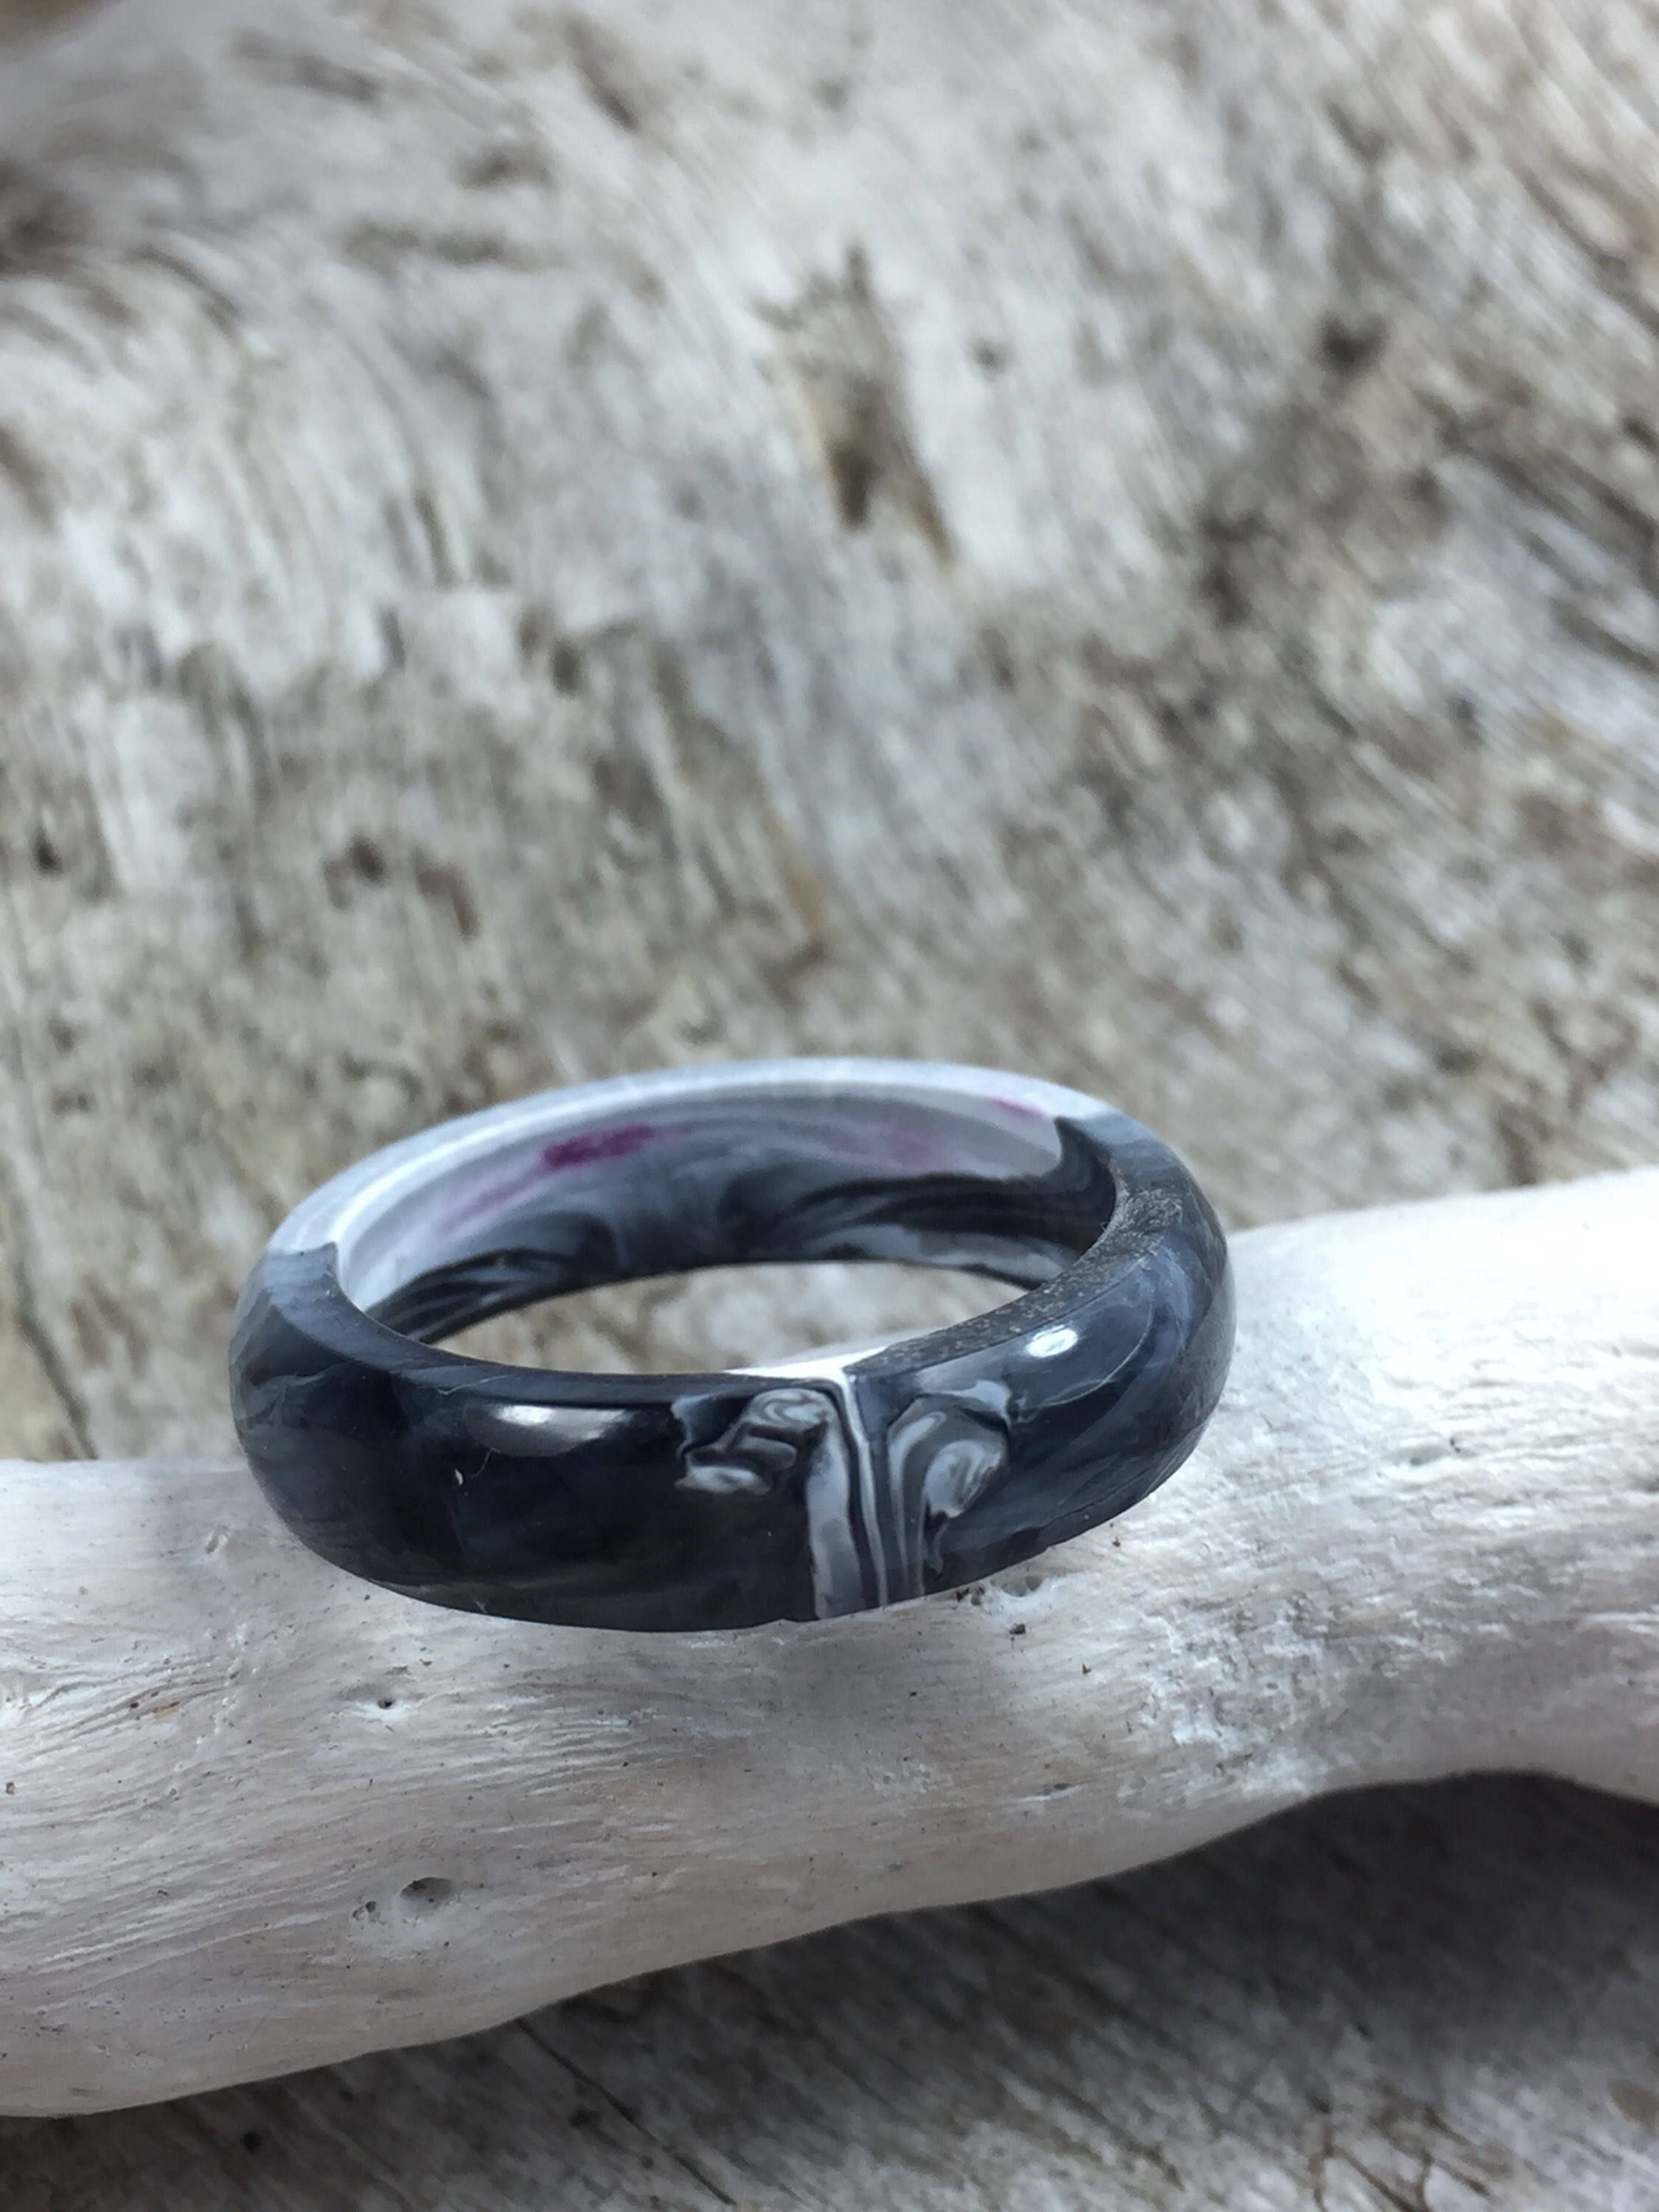 Resin jewelery/special resin ring in black and white in the inside ...